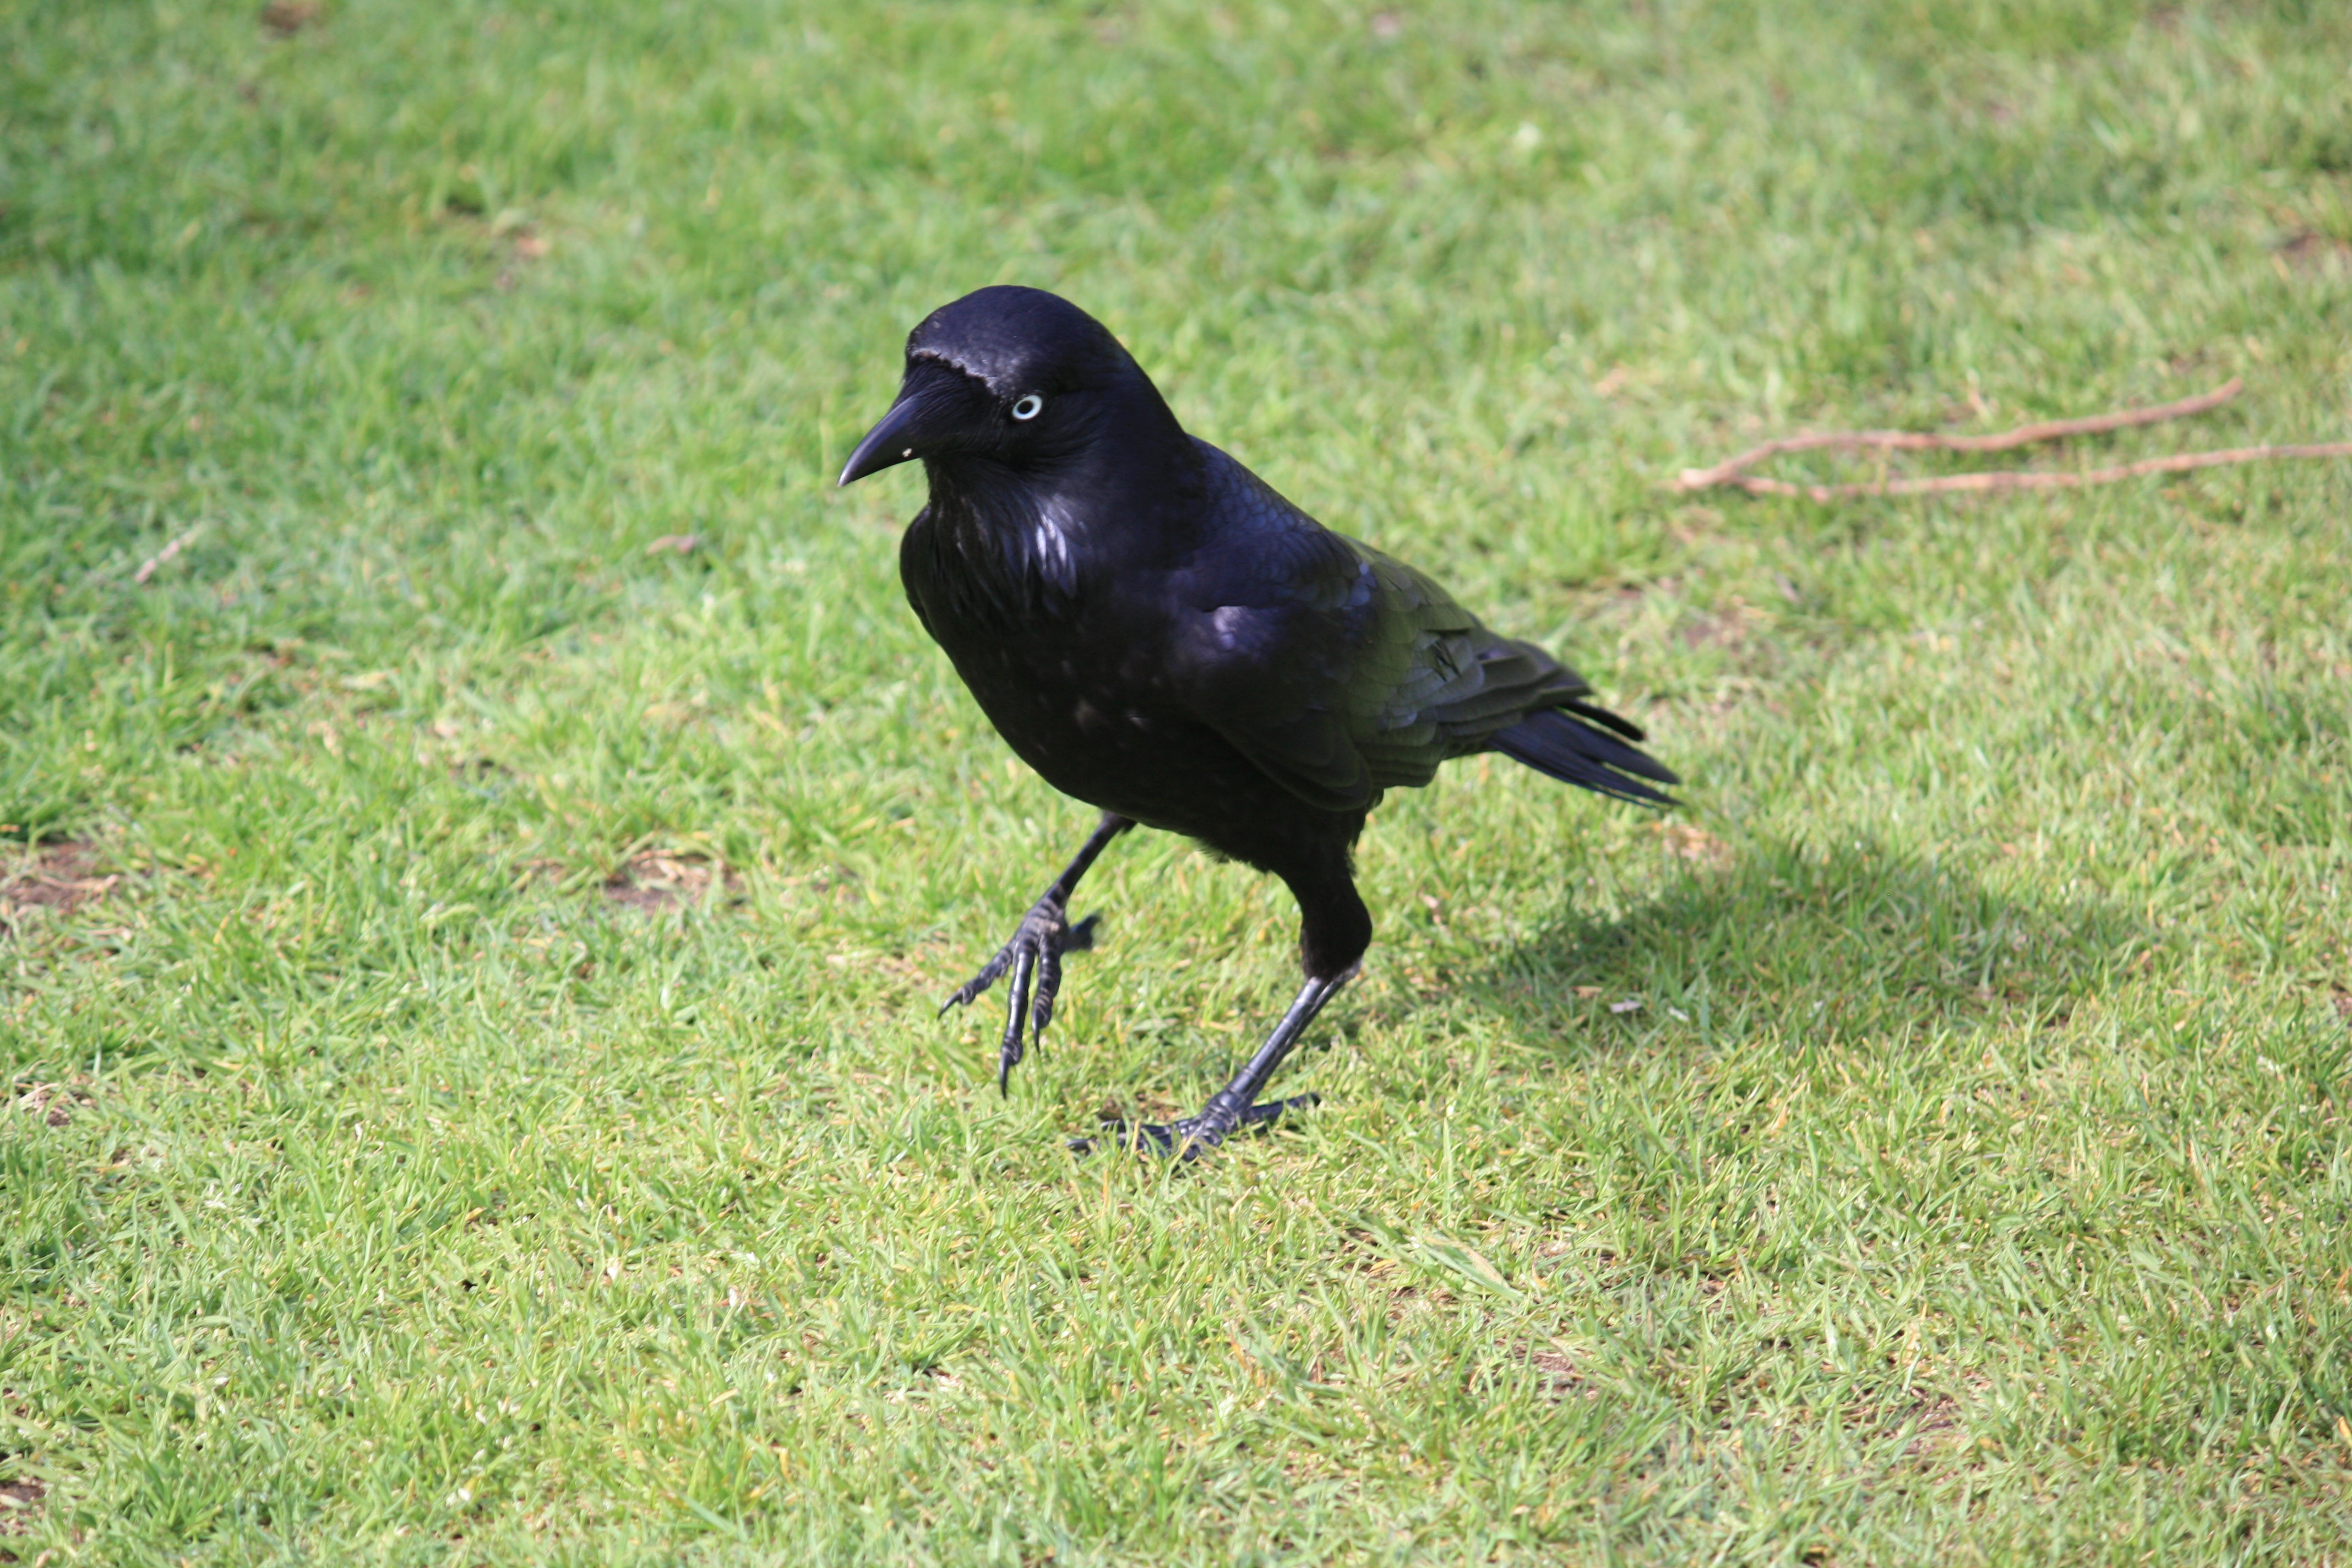 Crow (actually it's a little raven)